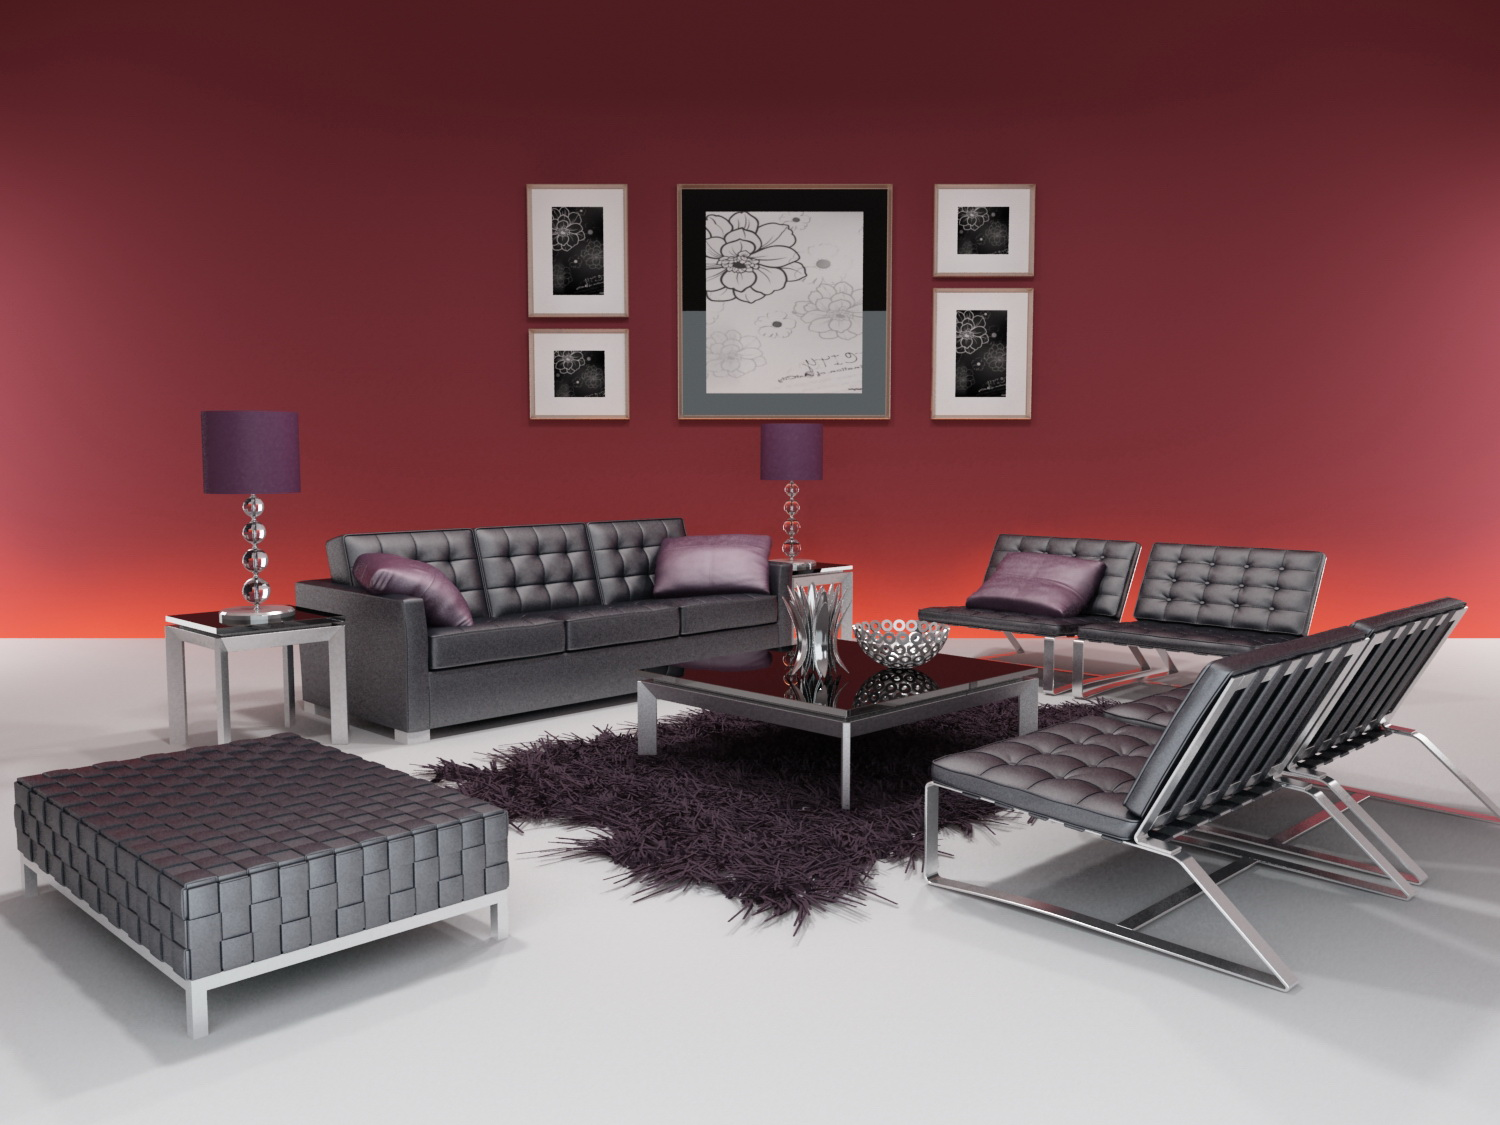 3d model of the whole furniture of modern style including materials 3d model download free 3d - Modern eetkamer model ...